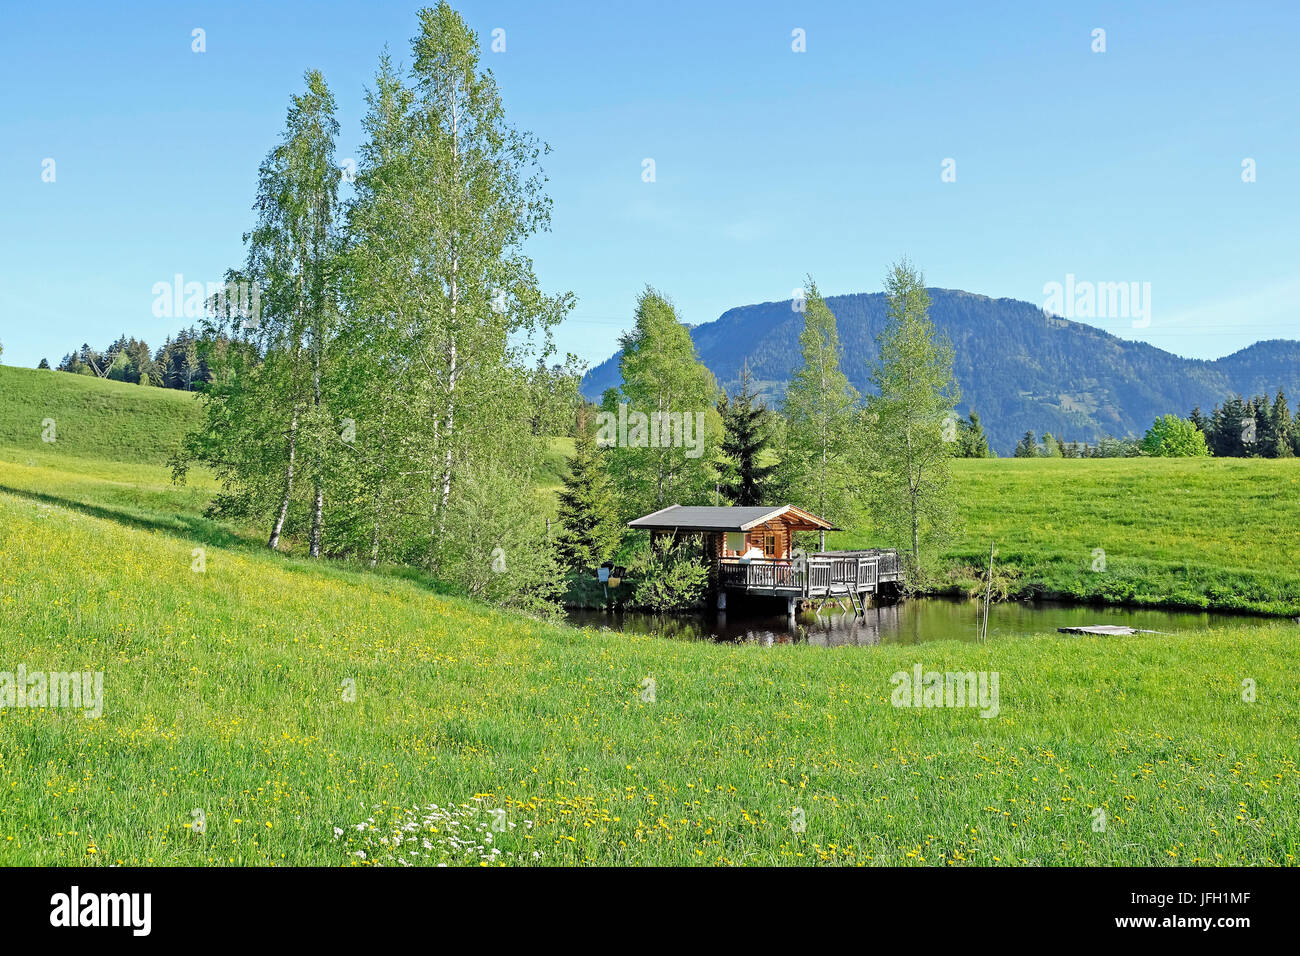 small country house in the pond log cabin hut partial building on